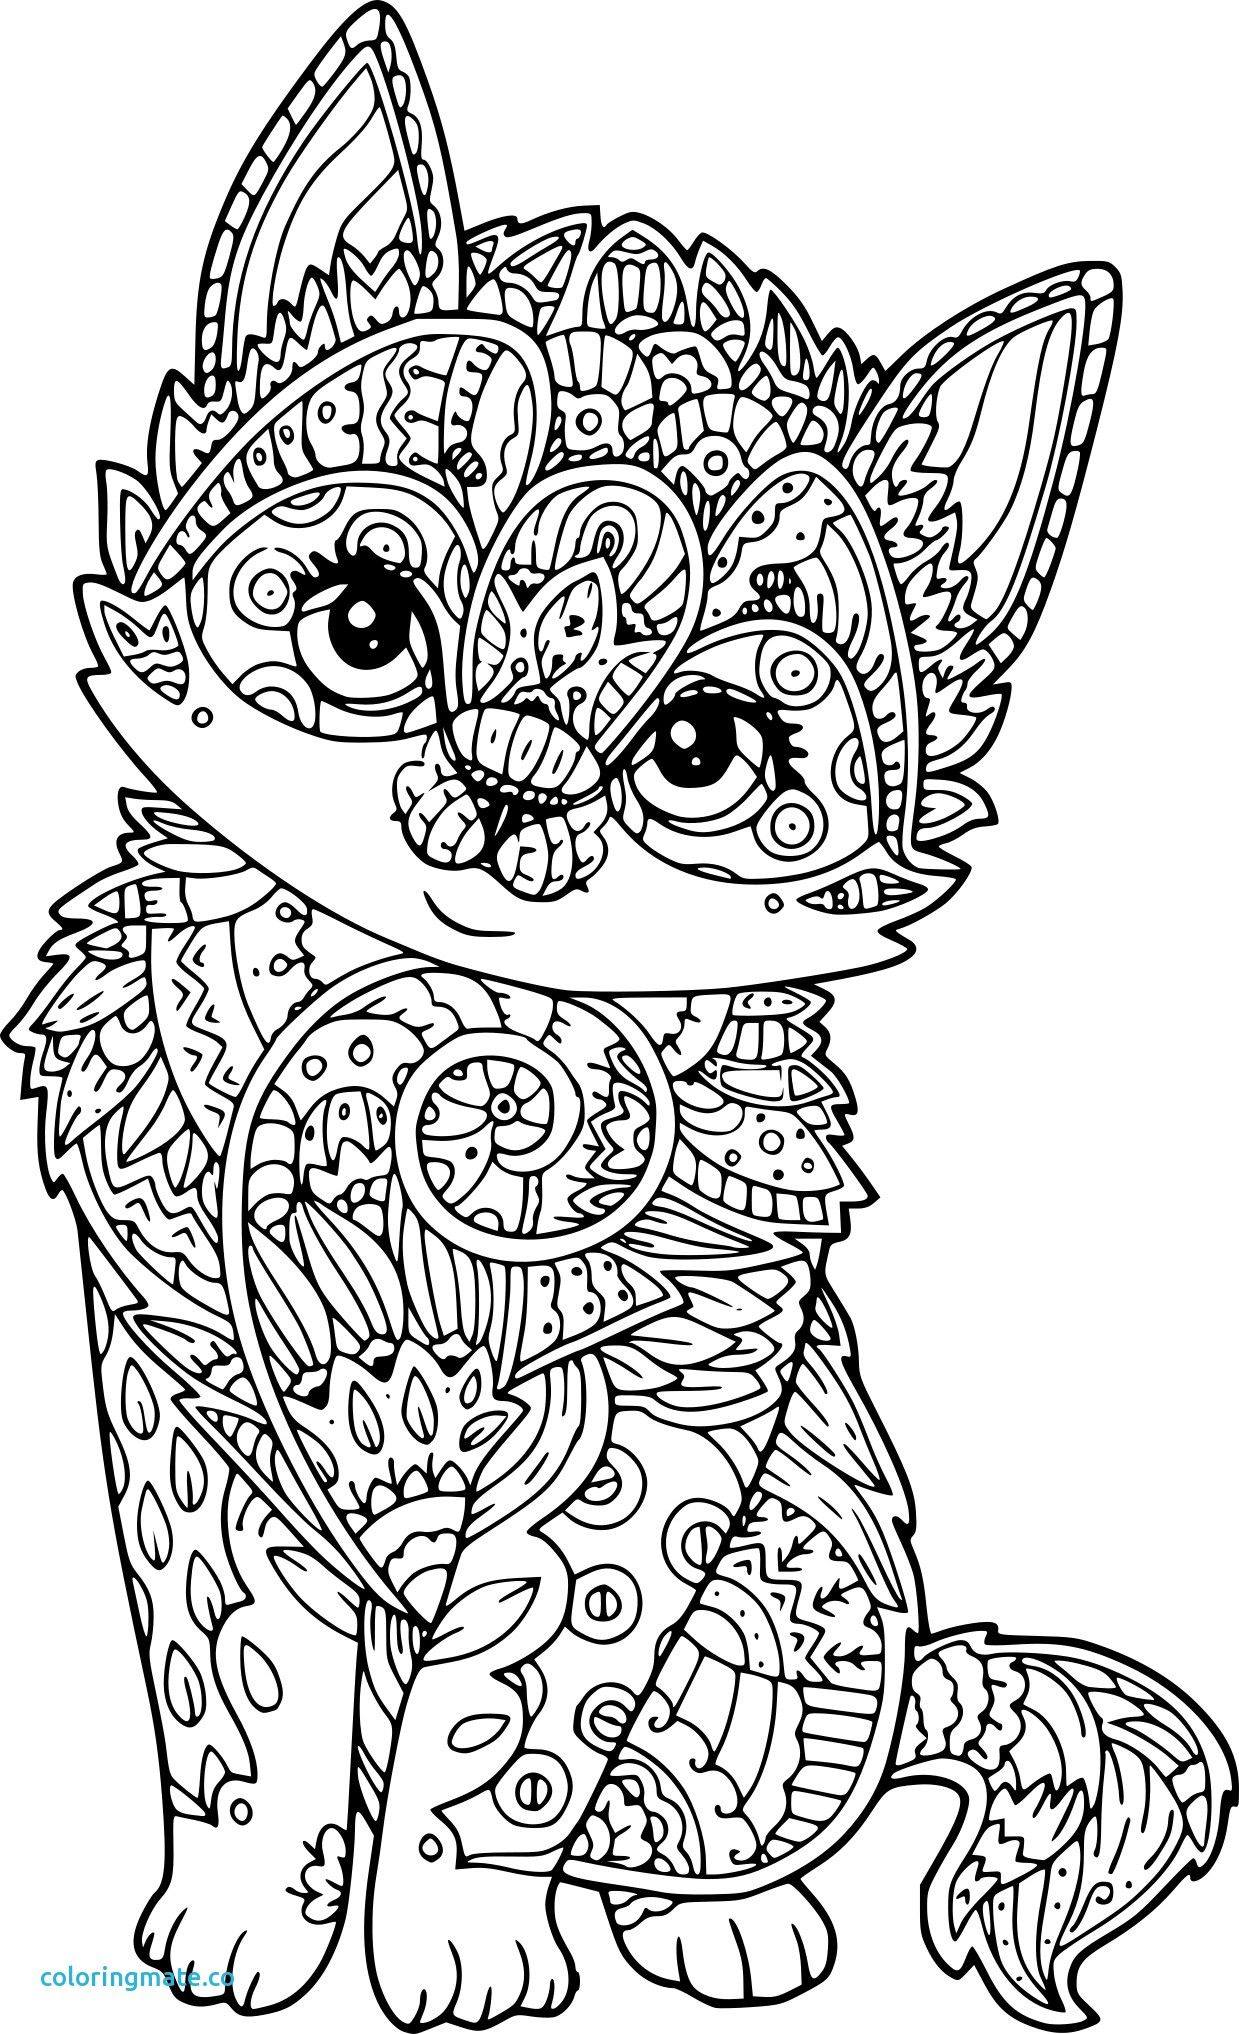 coloriage anti stress chat à imprimer